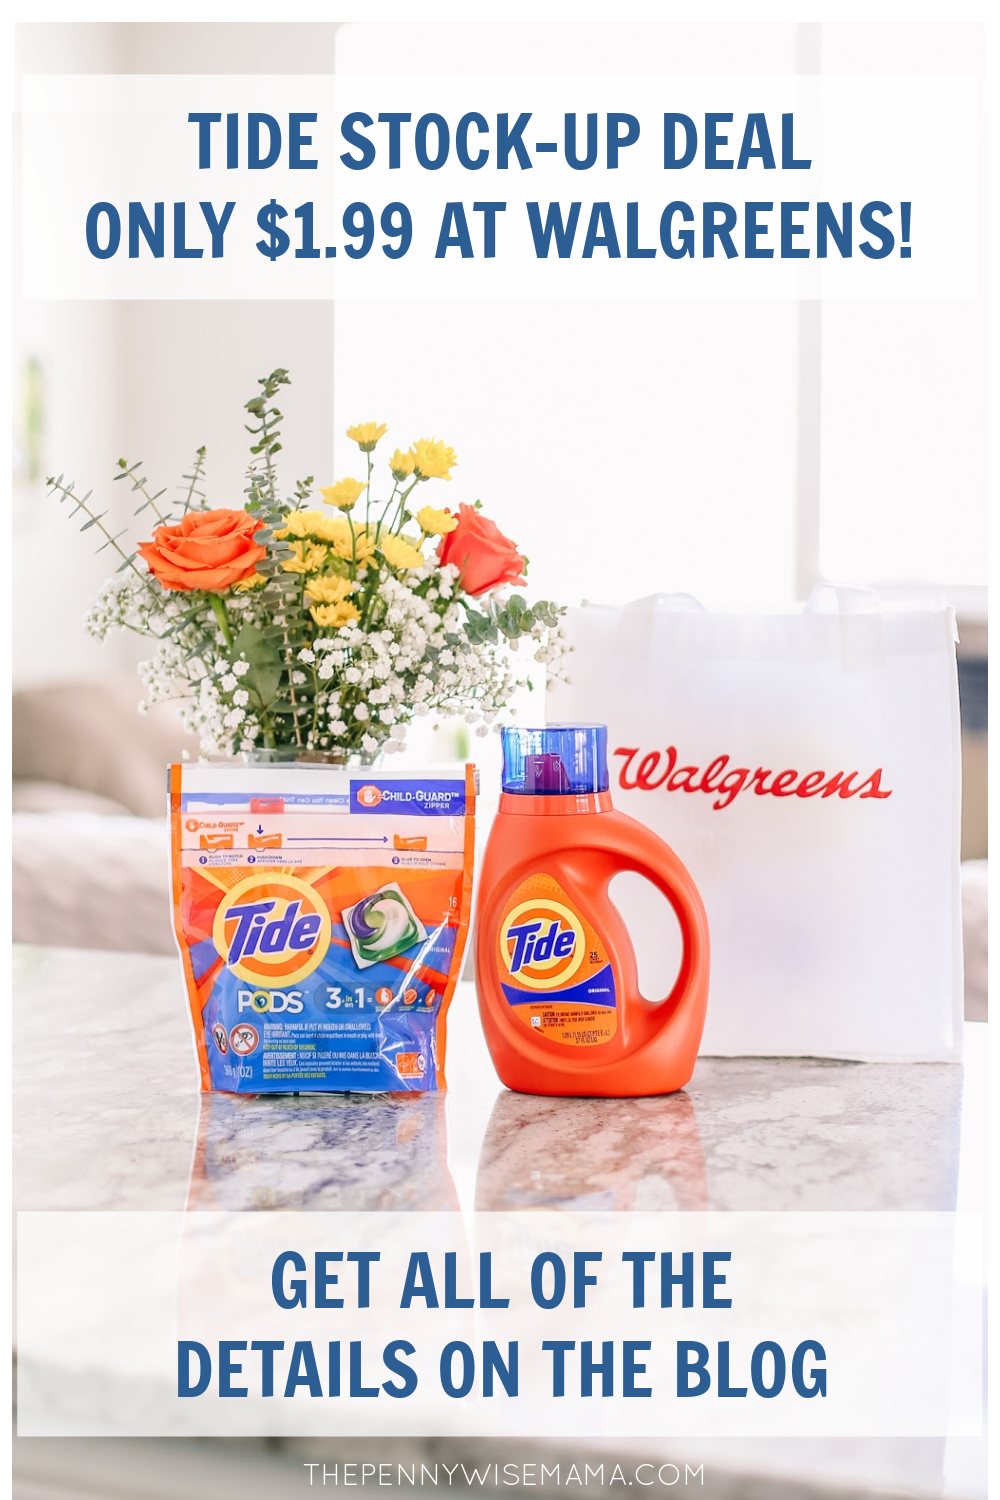 Now is a great time to stock up on Tide laundry detergent at Walgreens! Through 6/19, you can score Tide liquid detergent or Tide PODS for as low as $1.99 each! I'm sharing all of the details on the blog.